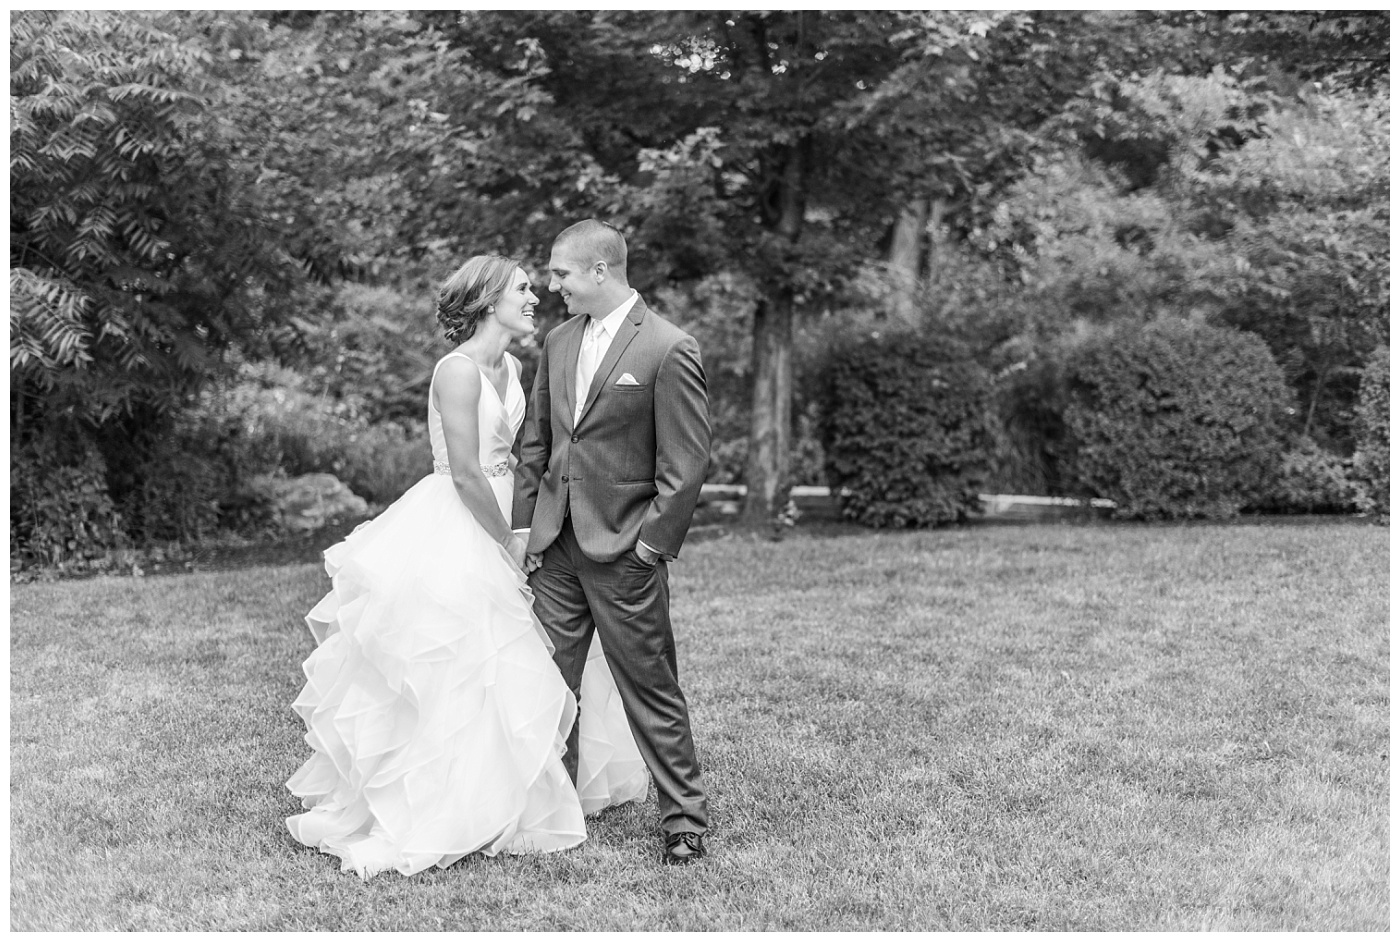 Stephanie Marie Photography Newman Catholic Center Ceremony Bella Sala Reception Tiffin Iowa City Wedding Photographer Chelsey Justin Meyers_0053.jpg